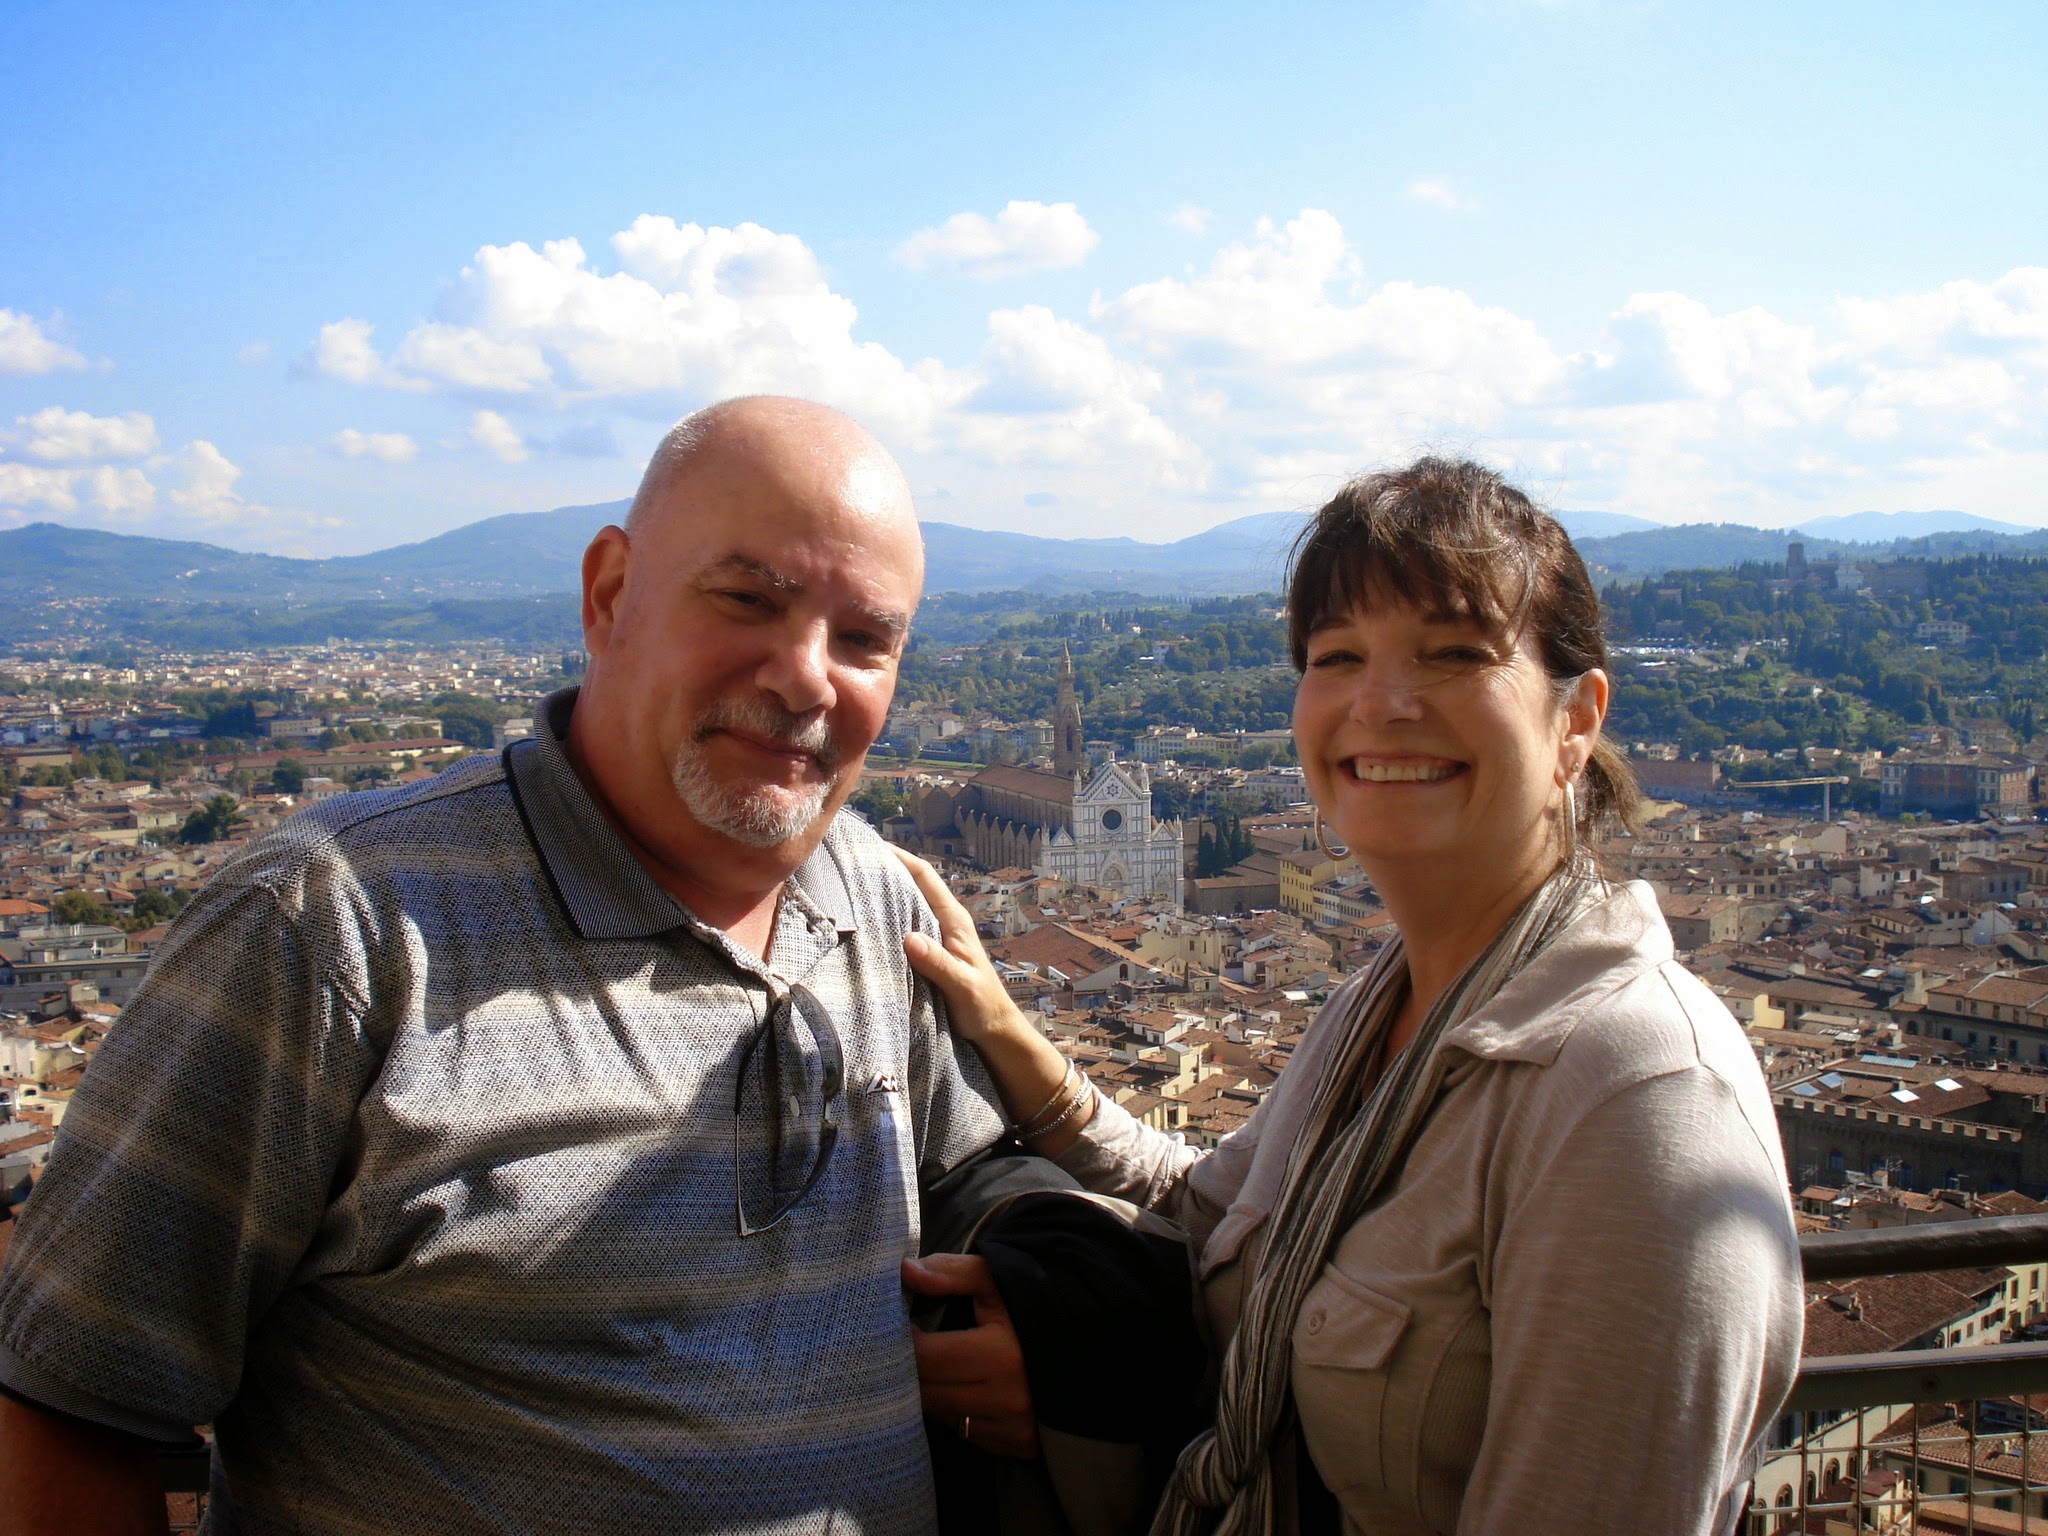 on top of the duomo in Florence, Italy during our 2010 adventure. ouritalianjourney.com